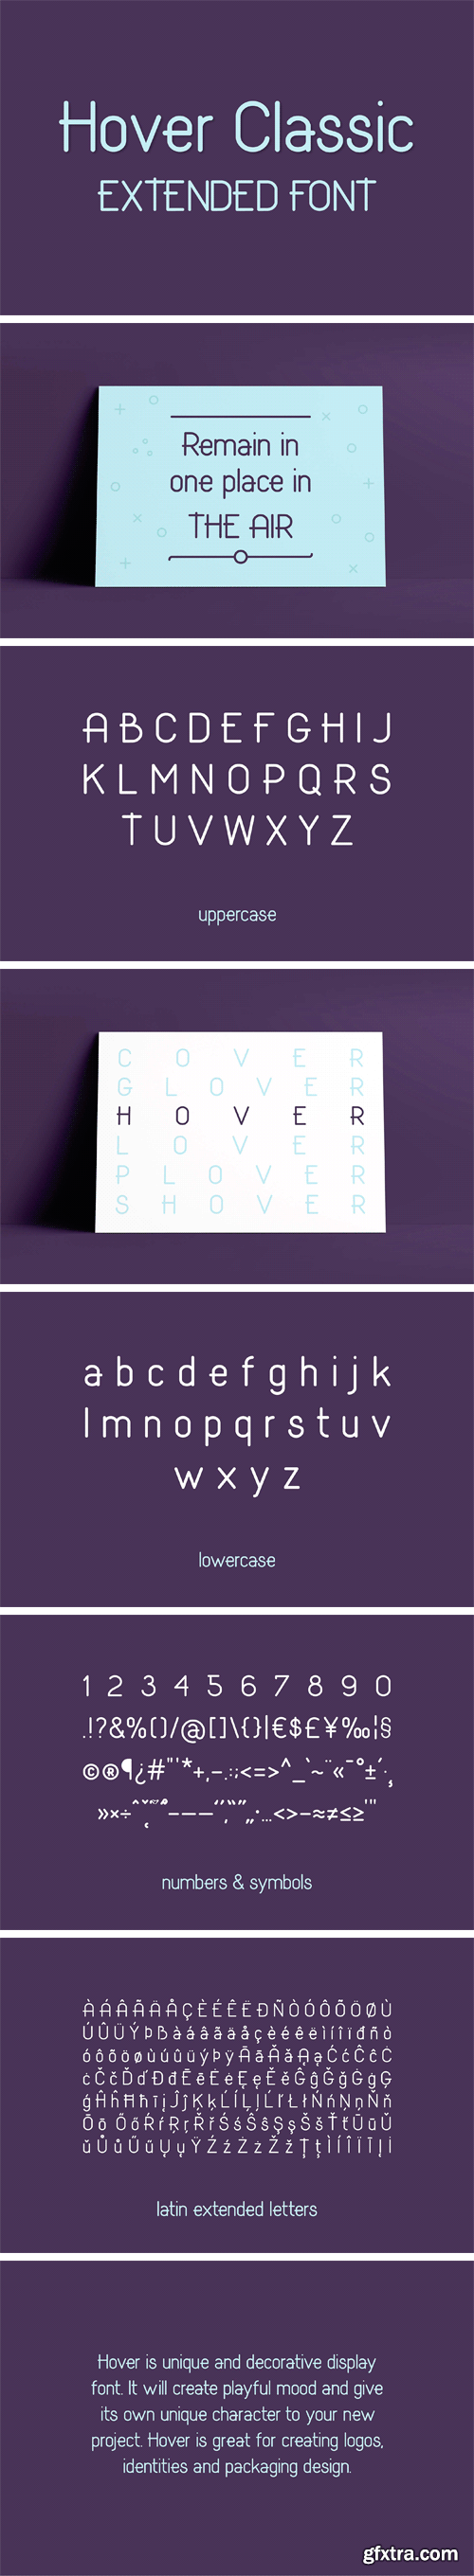 CM - Hover Classic Extended Font 2113225